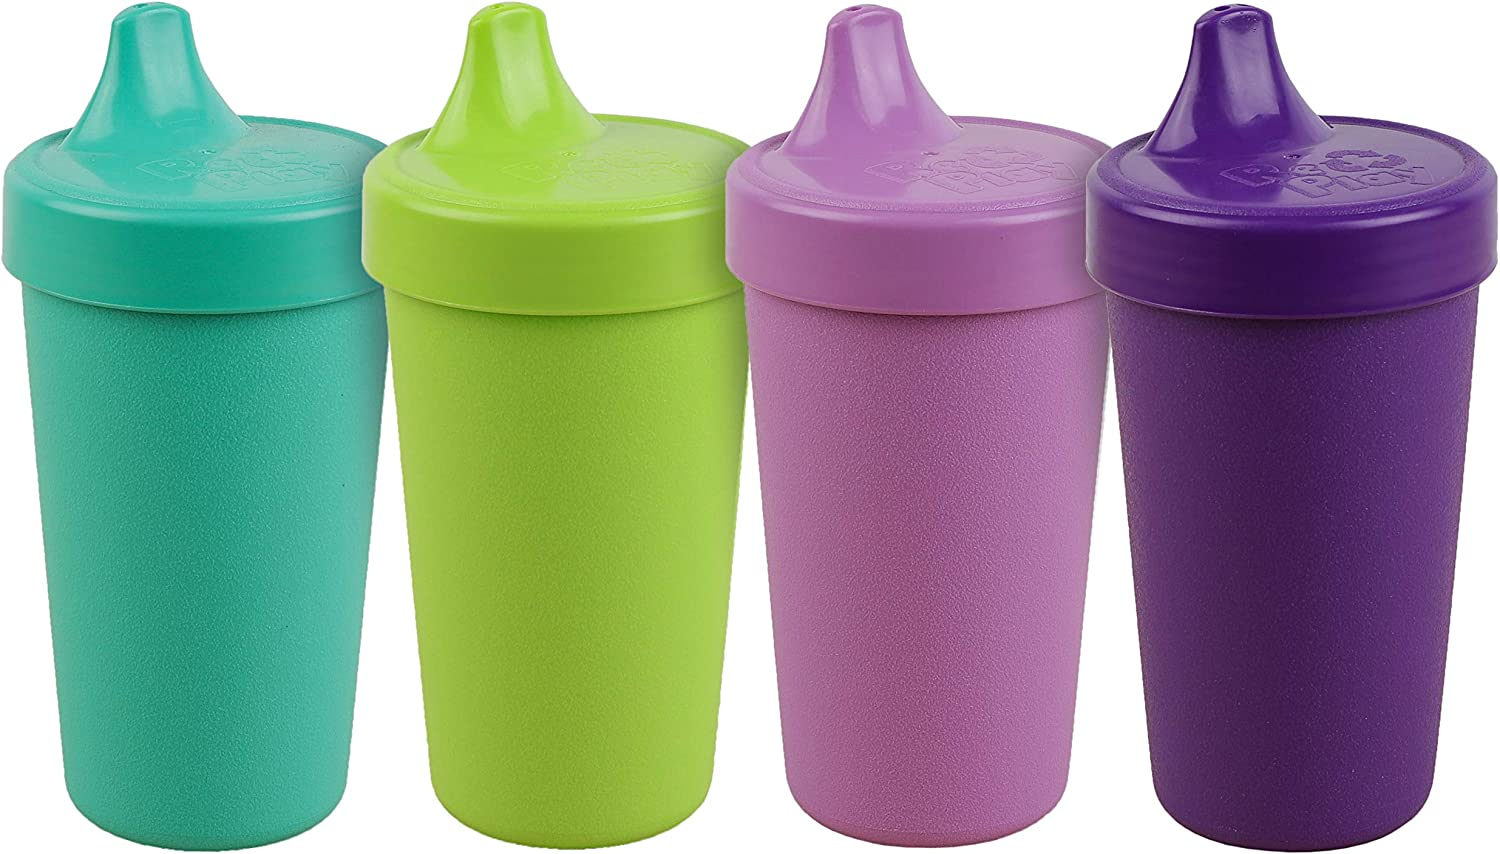 RE-PLAY 4pk - 10 shipfree oz. No Spill Toddler Fashion Sippy for Baby and Cups